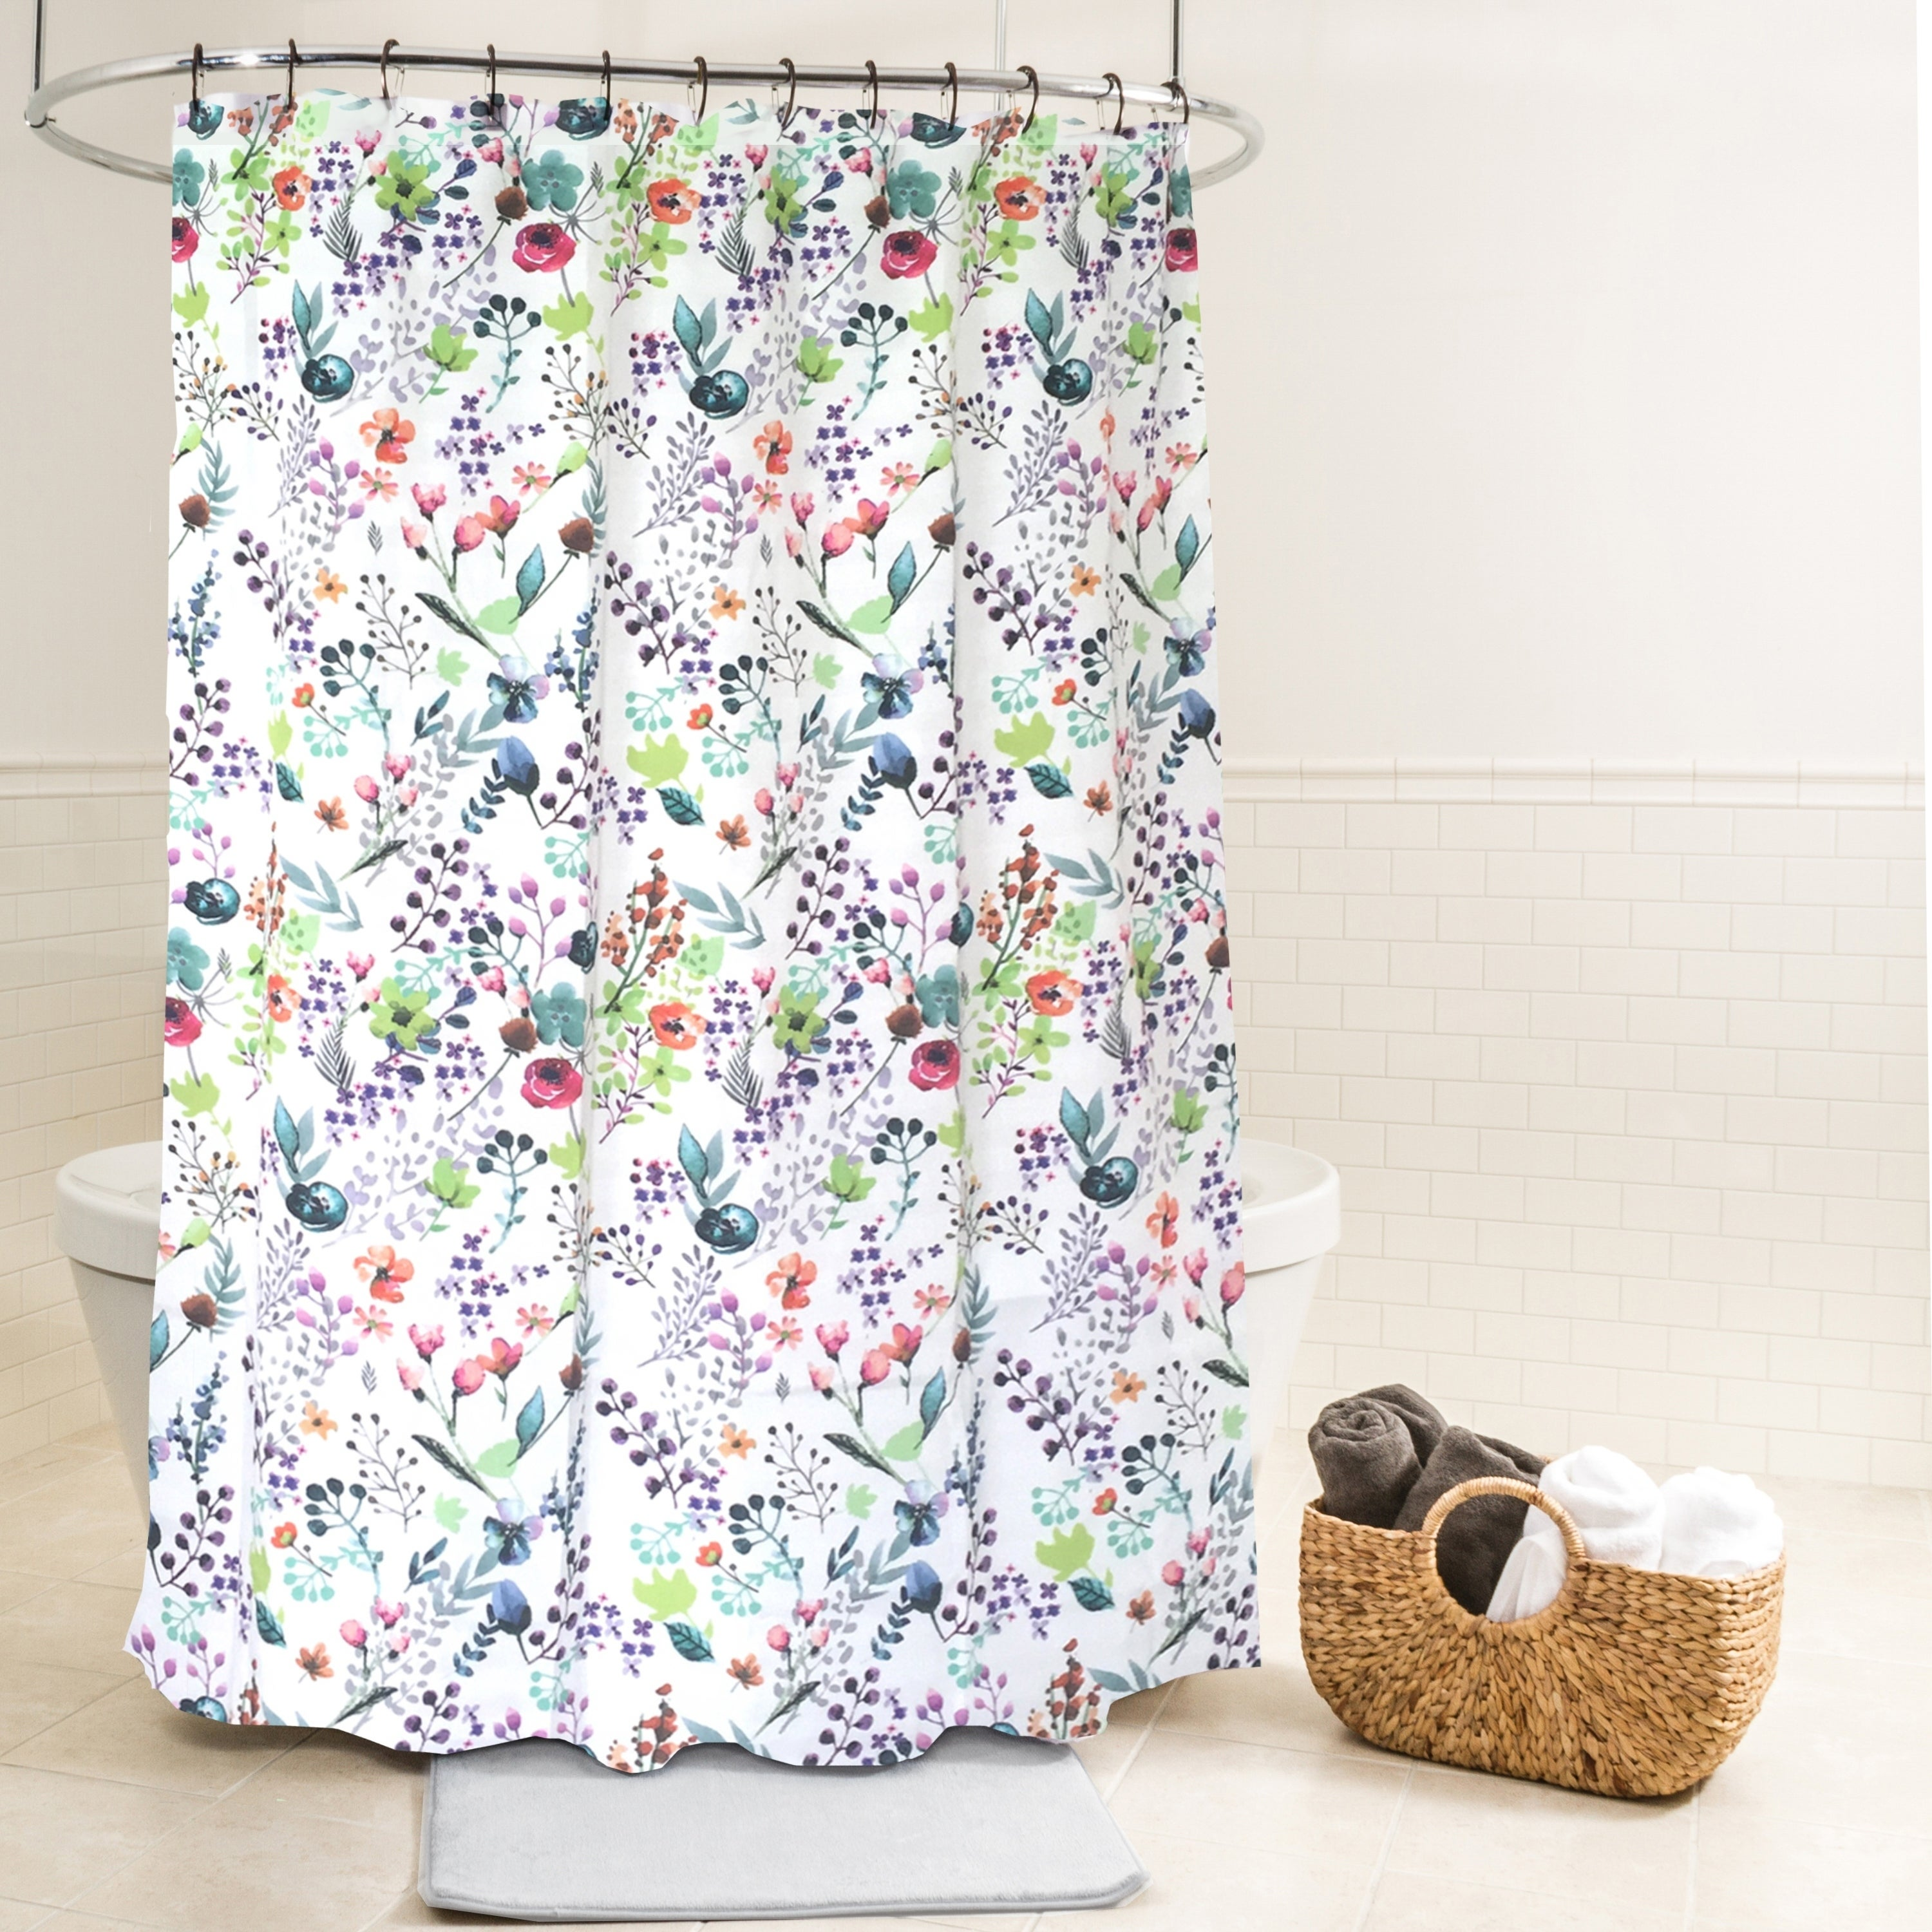 Splash Home Fiore Polyester Fabric Shower Curtain 70 X 72 Multi Colors